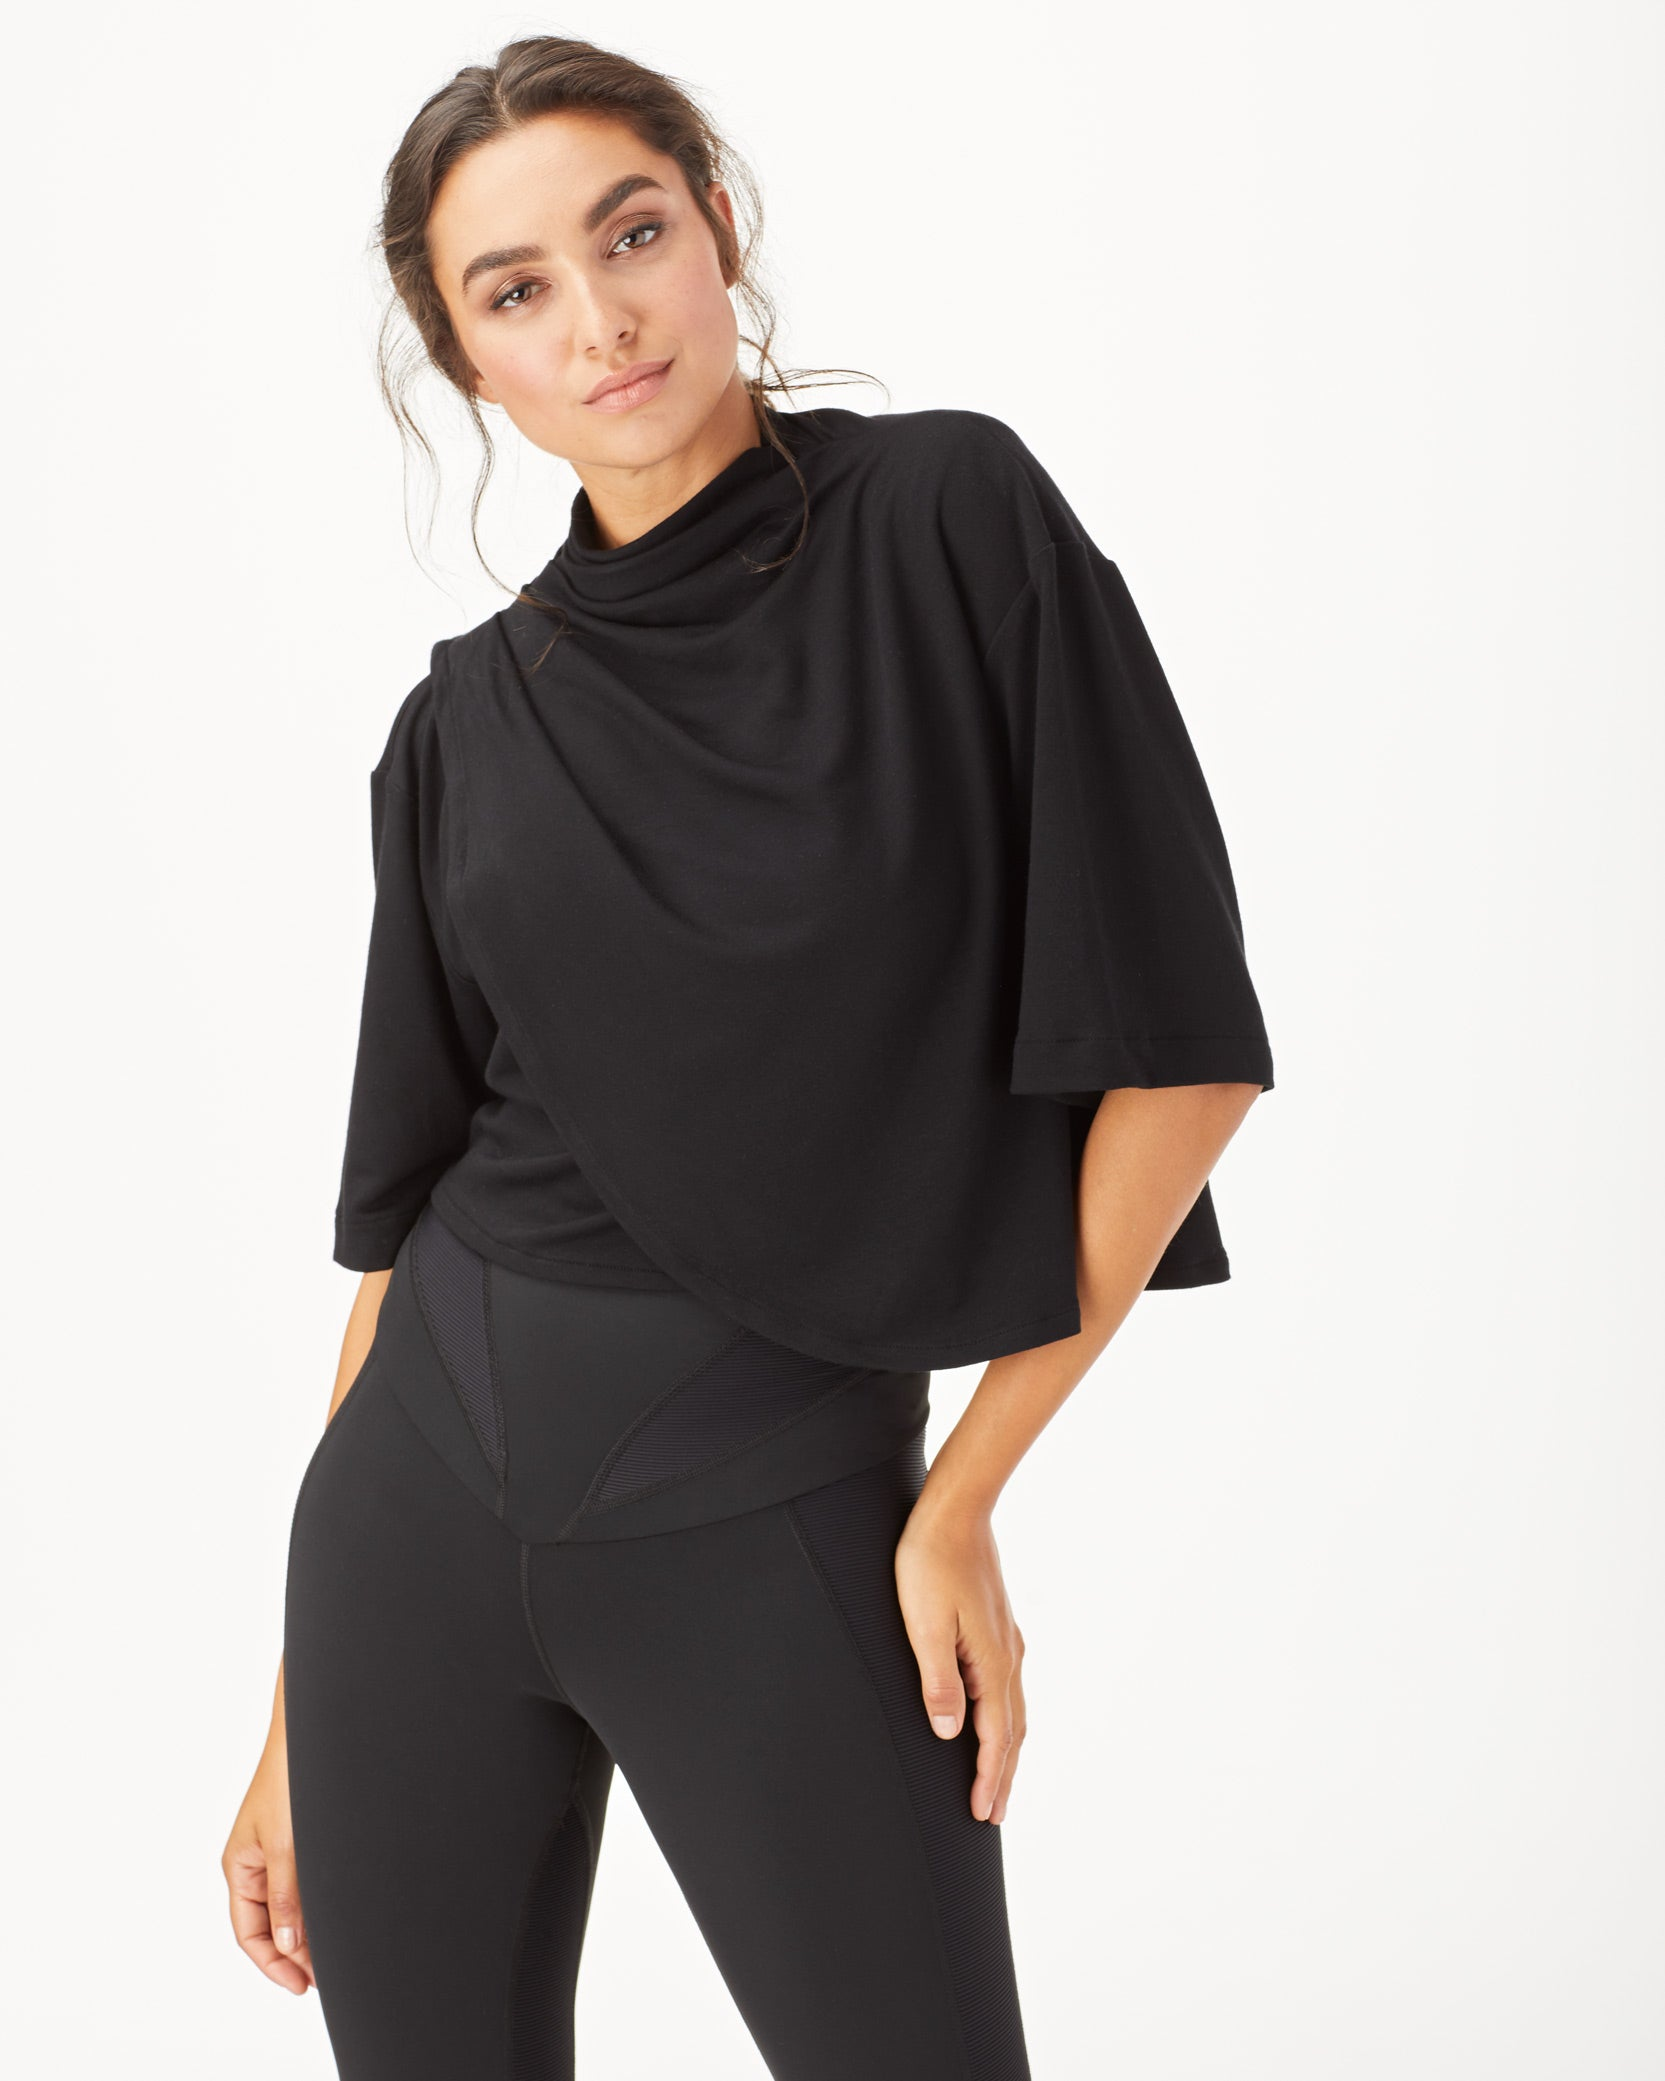 Voyageur Crop Top - Black